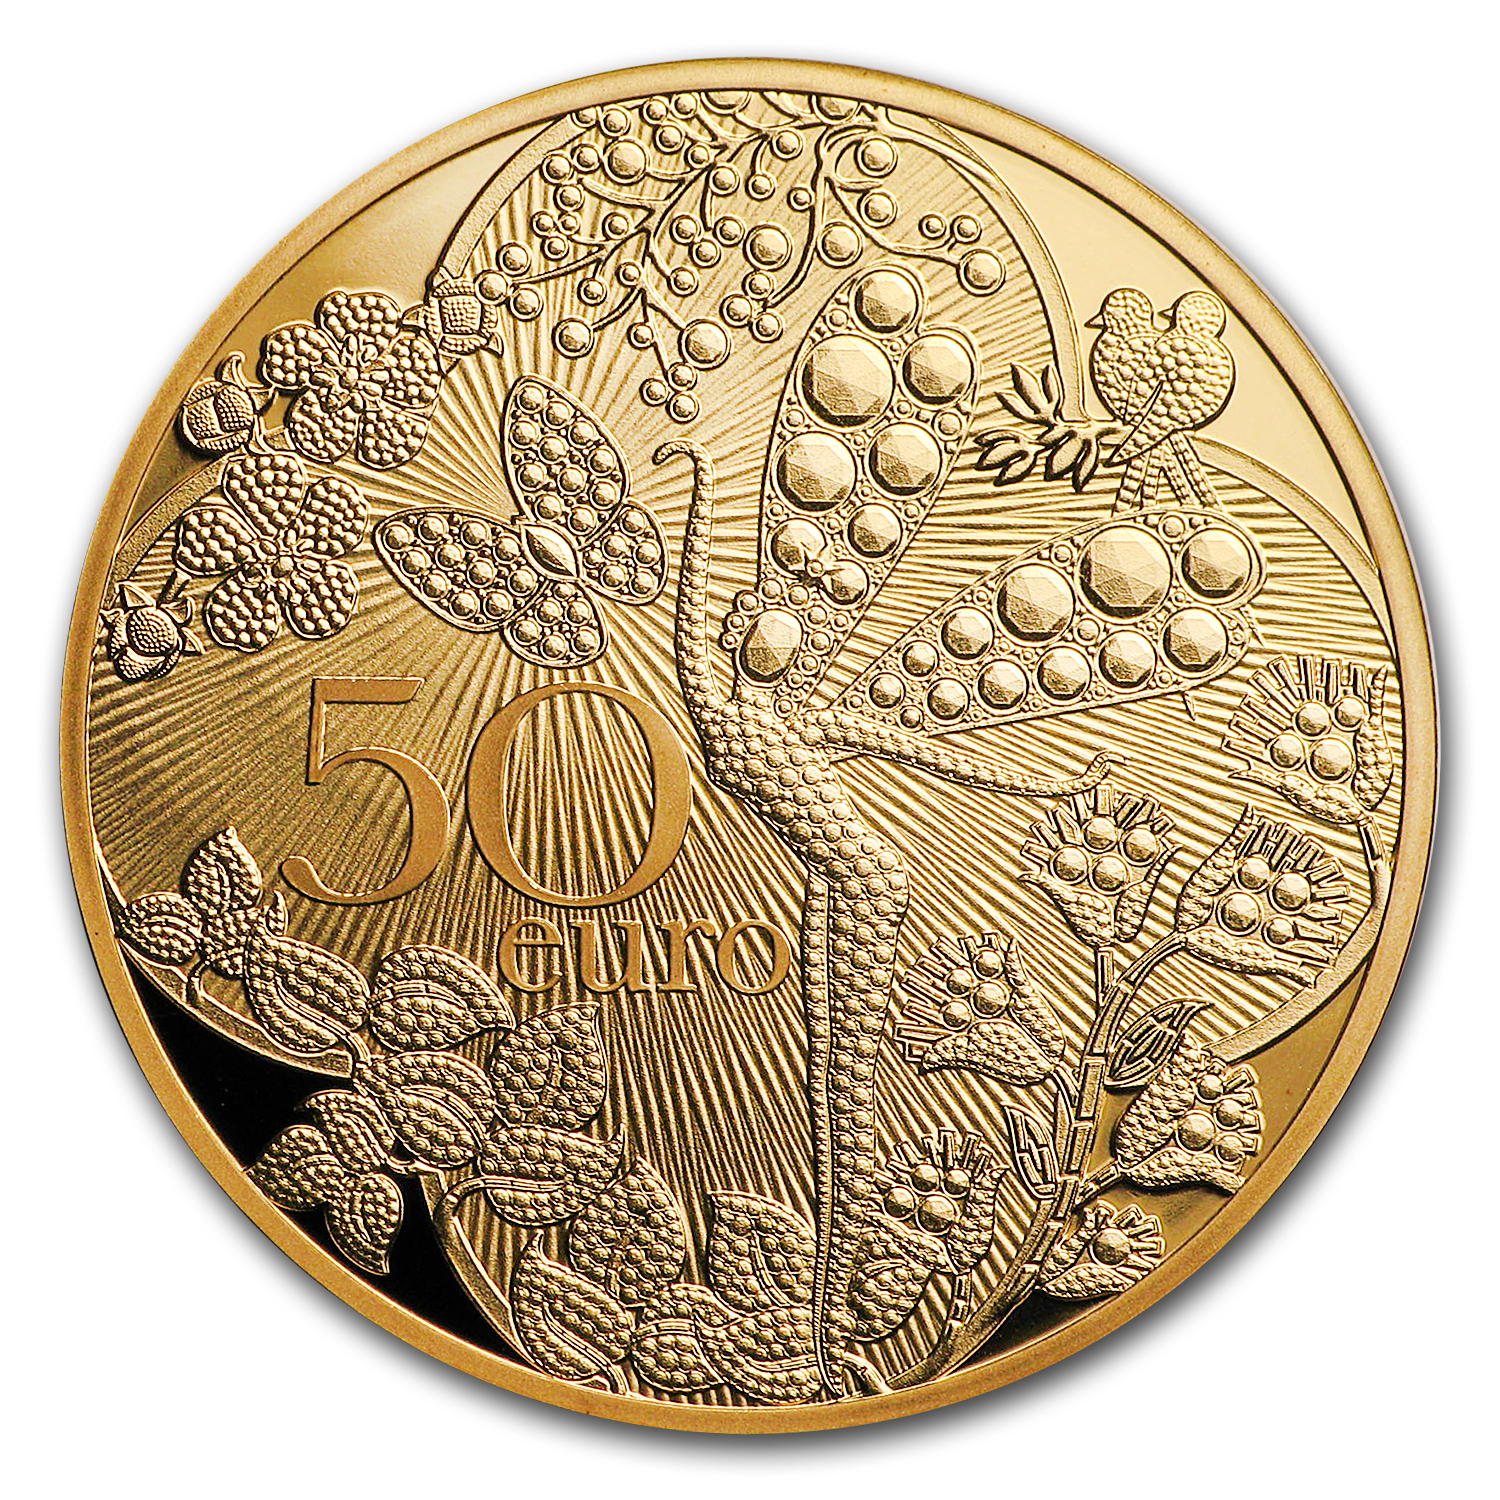 2016 1/4 oz Prf Gold €50 Excellence Series (Van Cleef & Arpels)